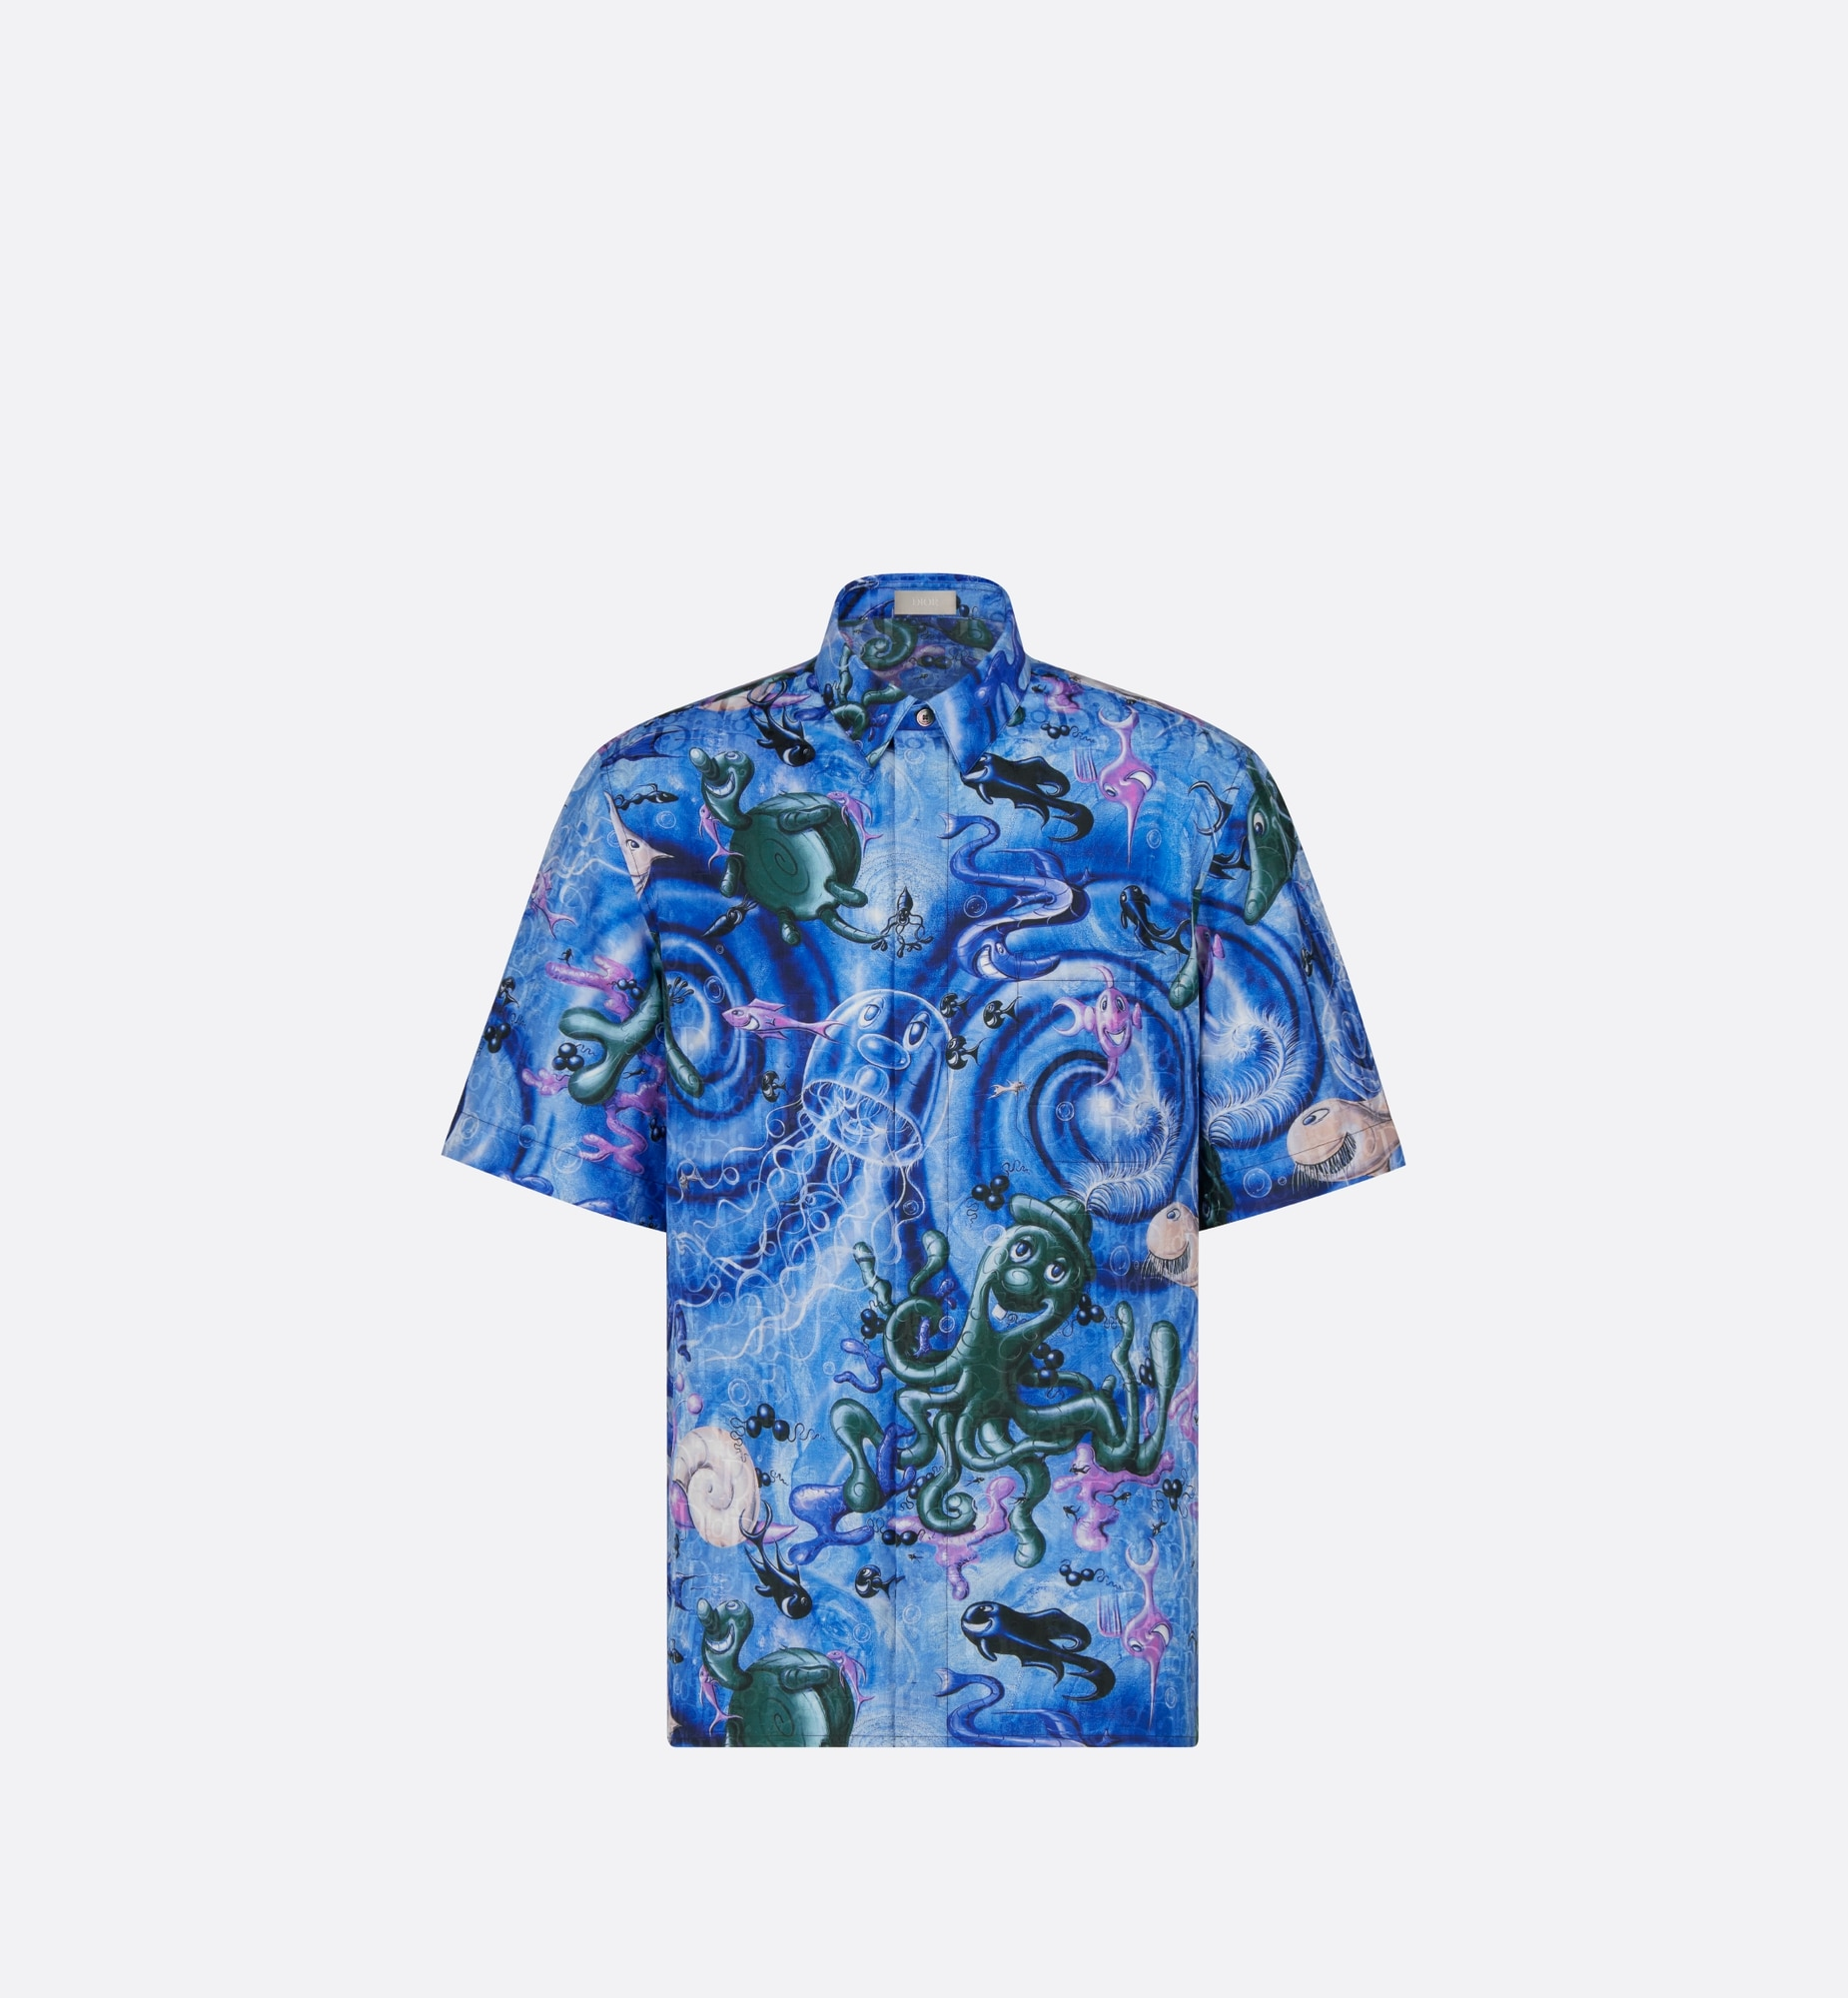 dior and kenny scharf shirt | Dior Front view